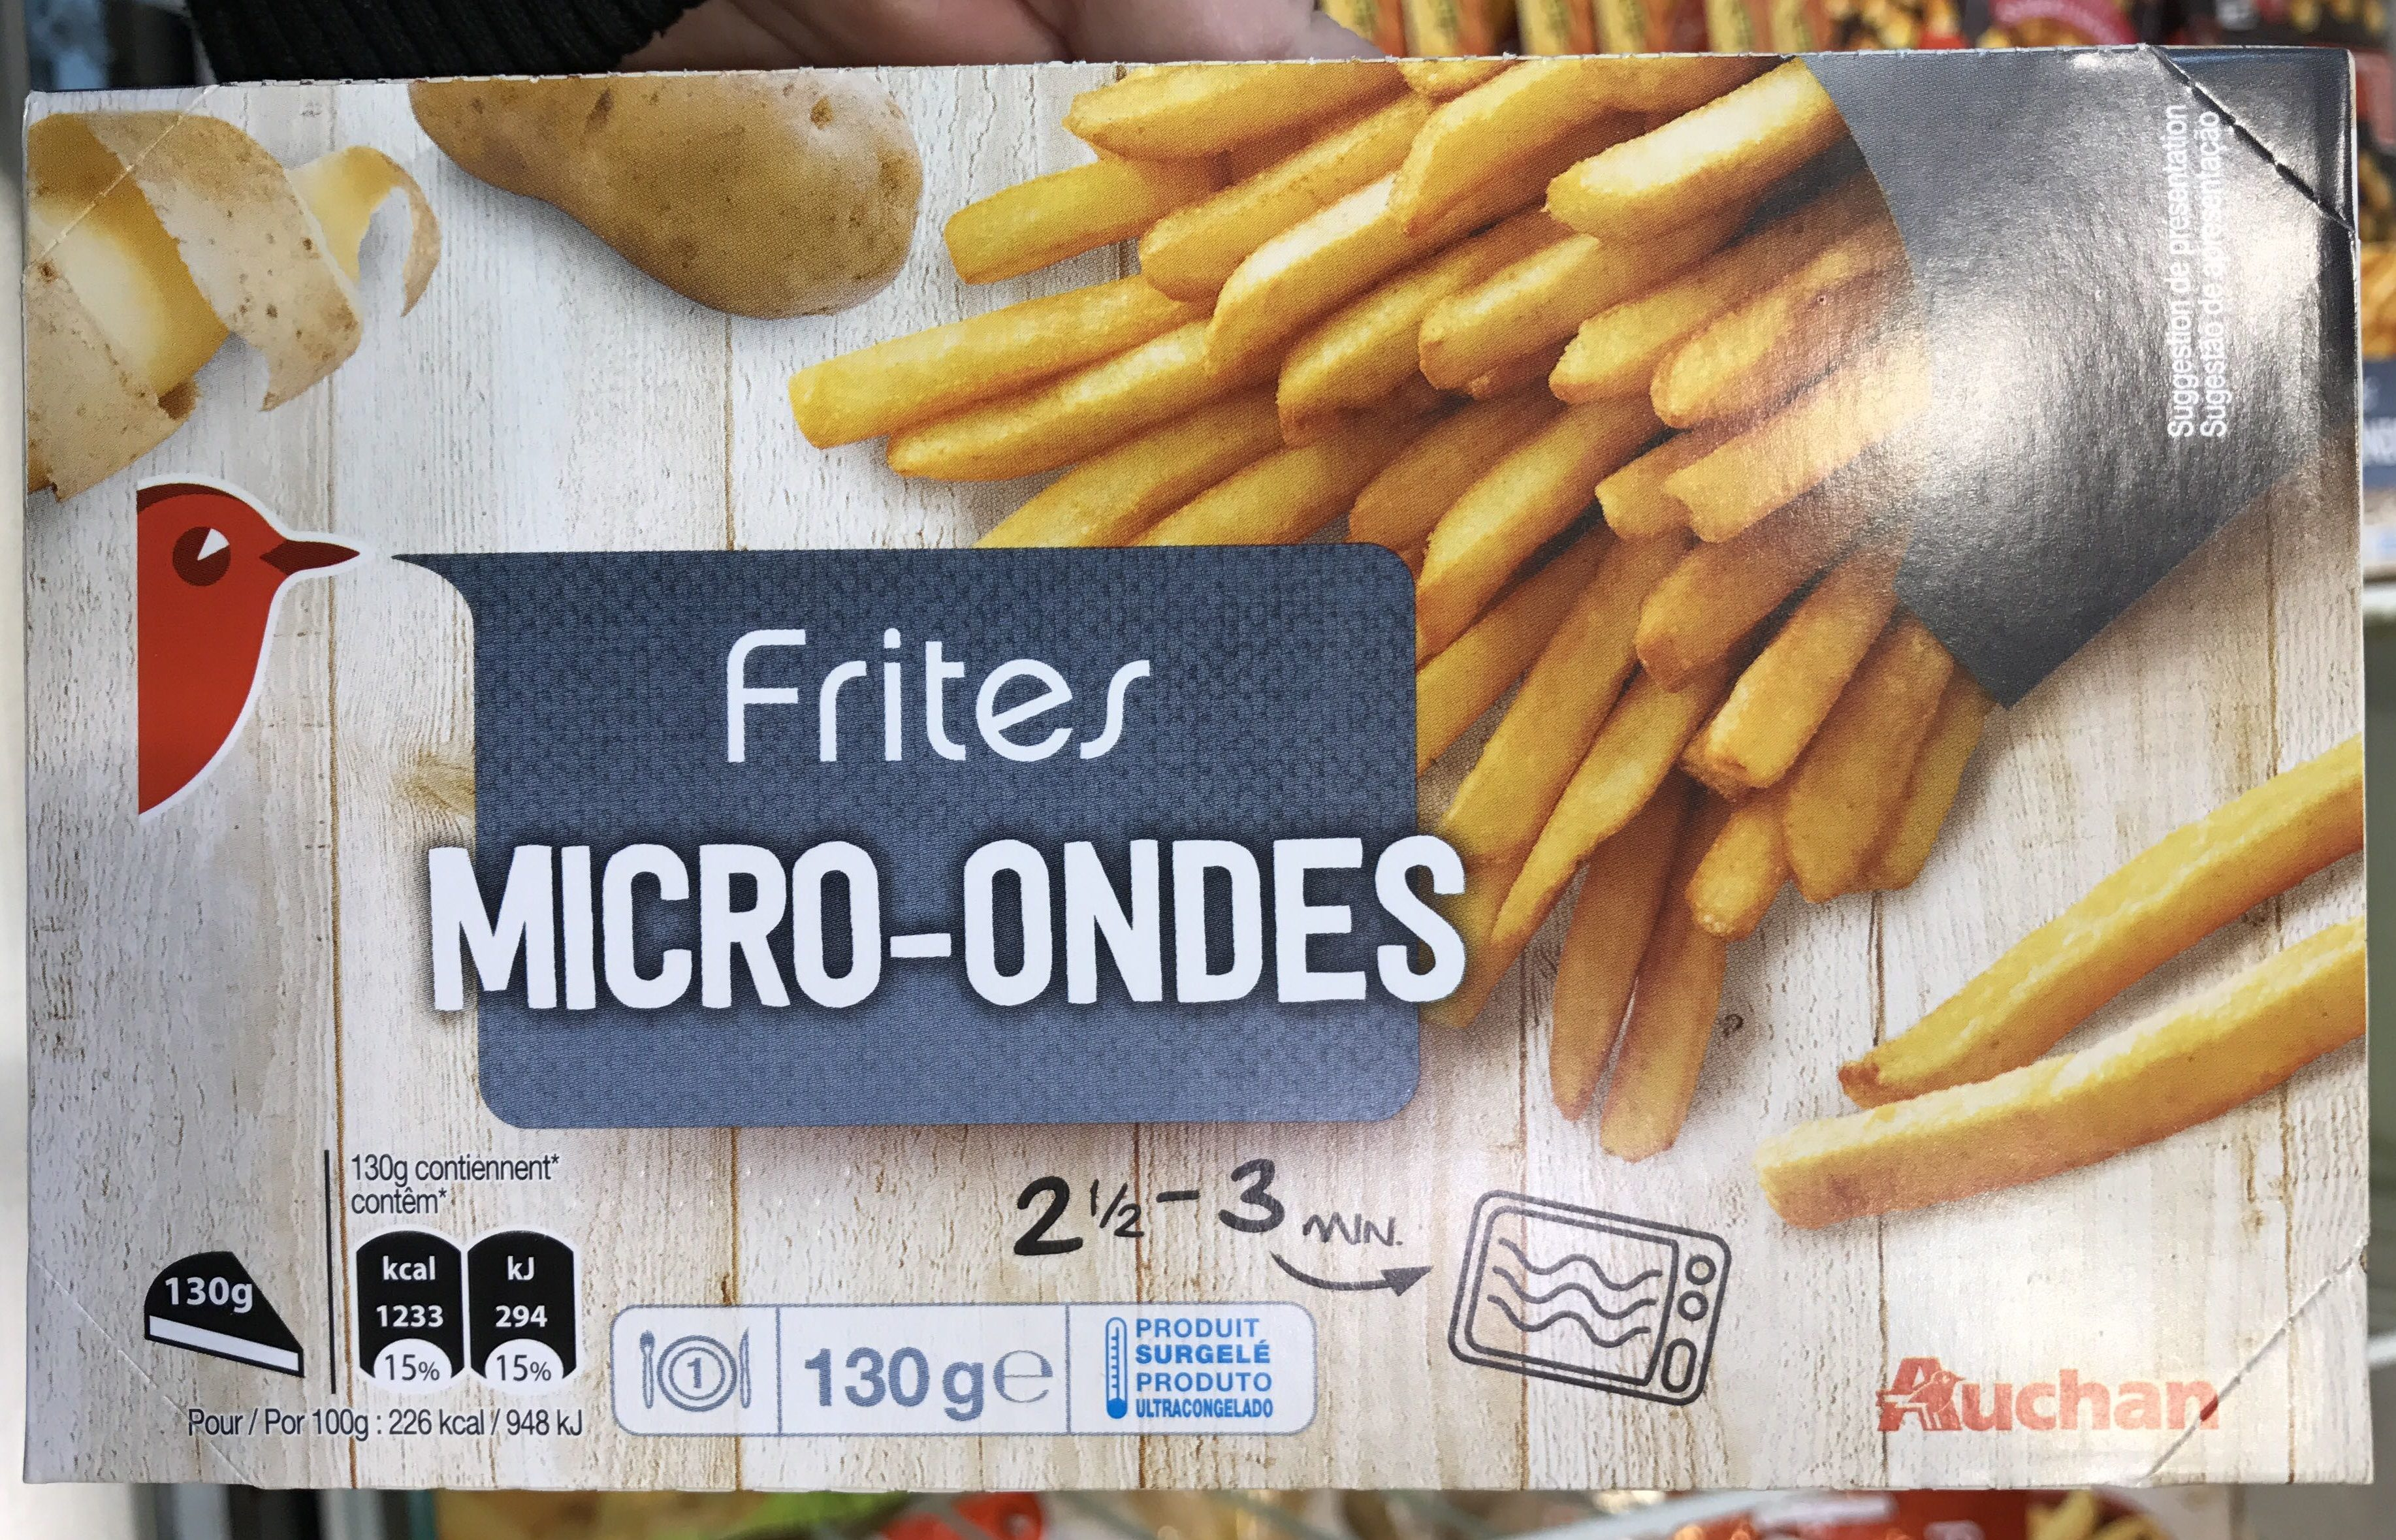 Frites Micro-Ondes - Producto